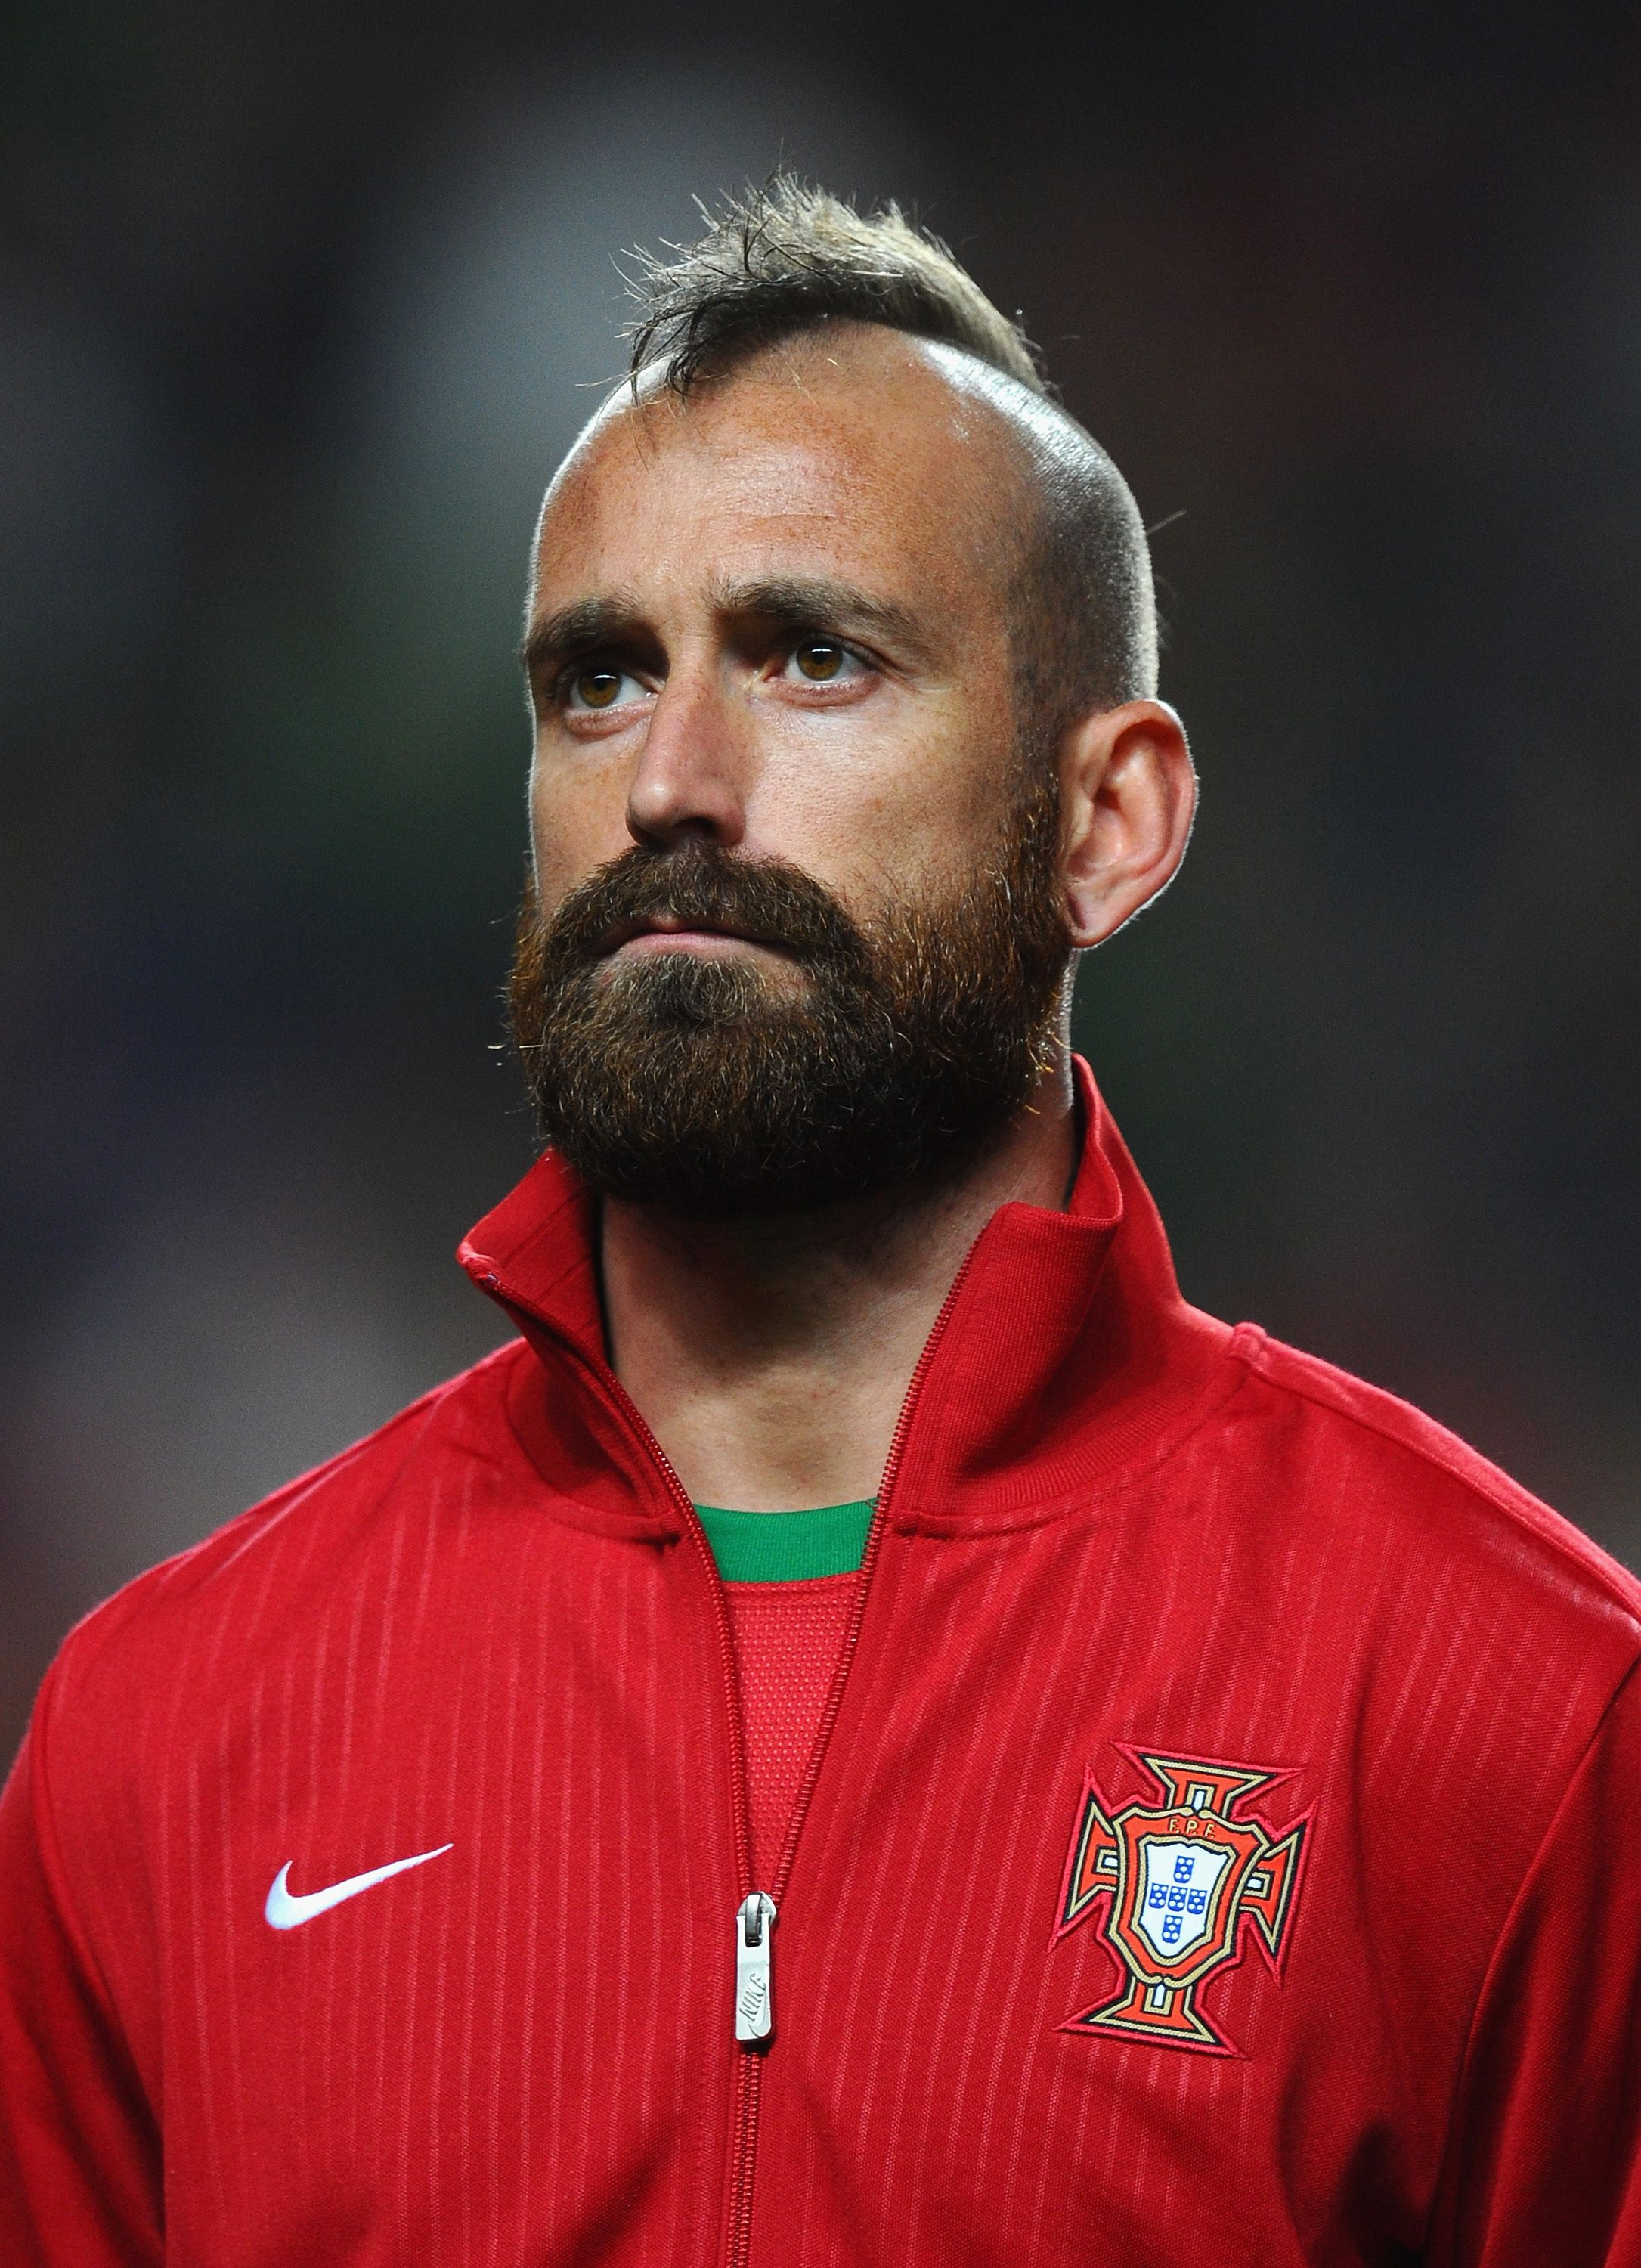 Portuguese soccer player Raul Meireles